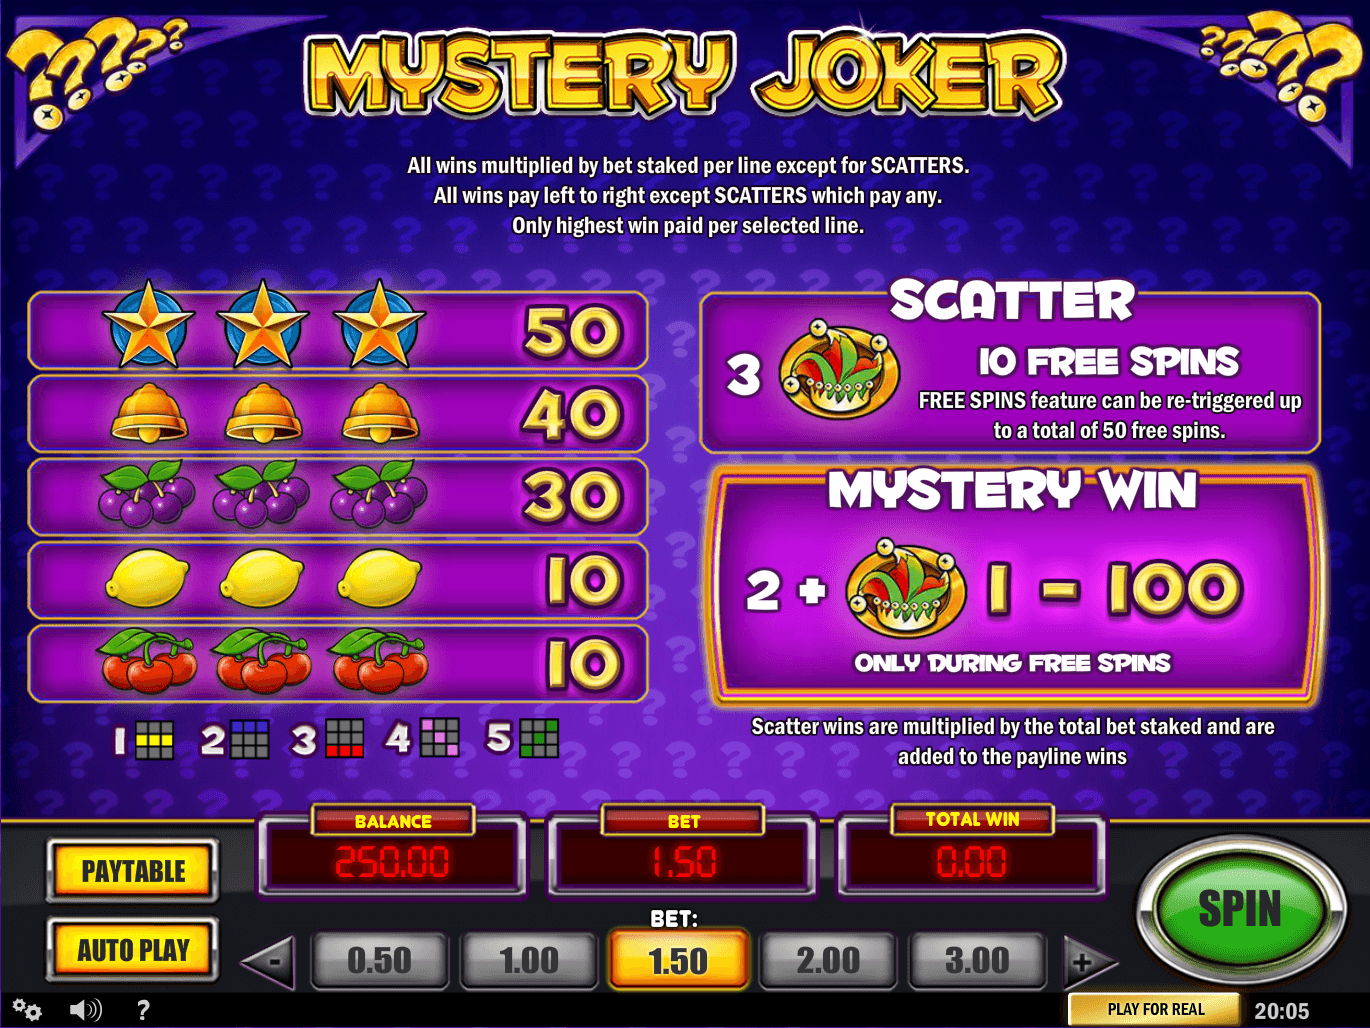 mystery joker slot paytable